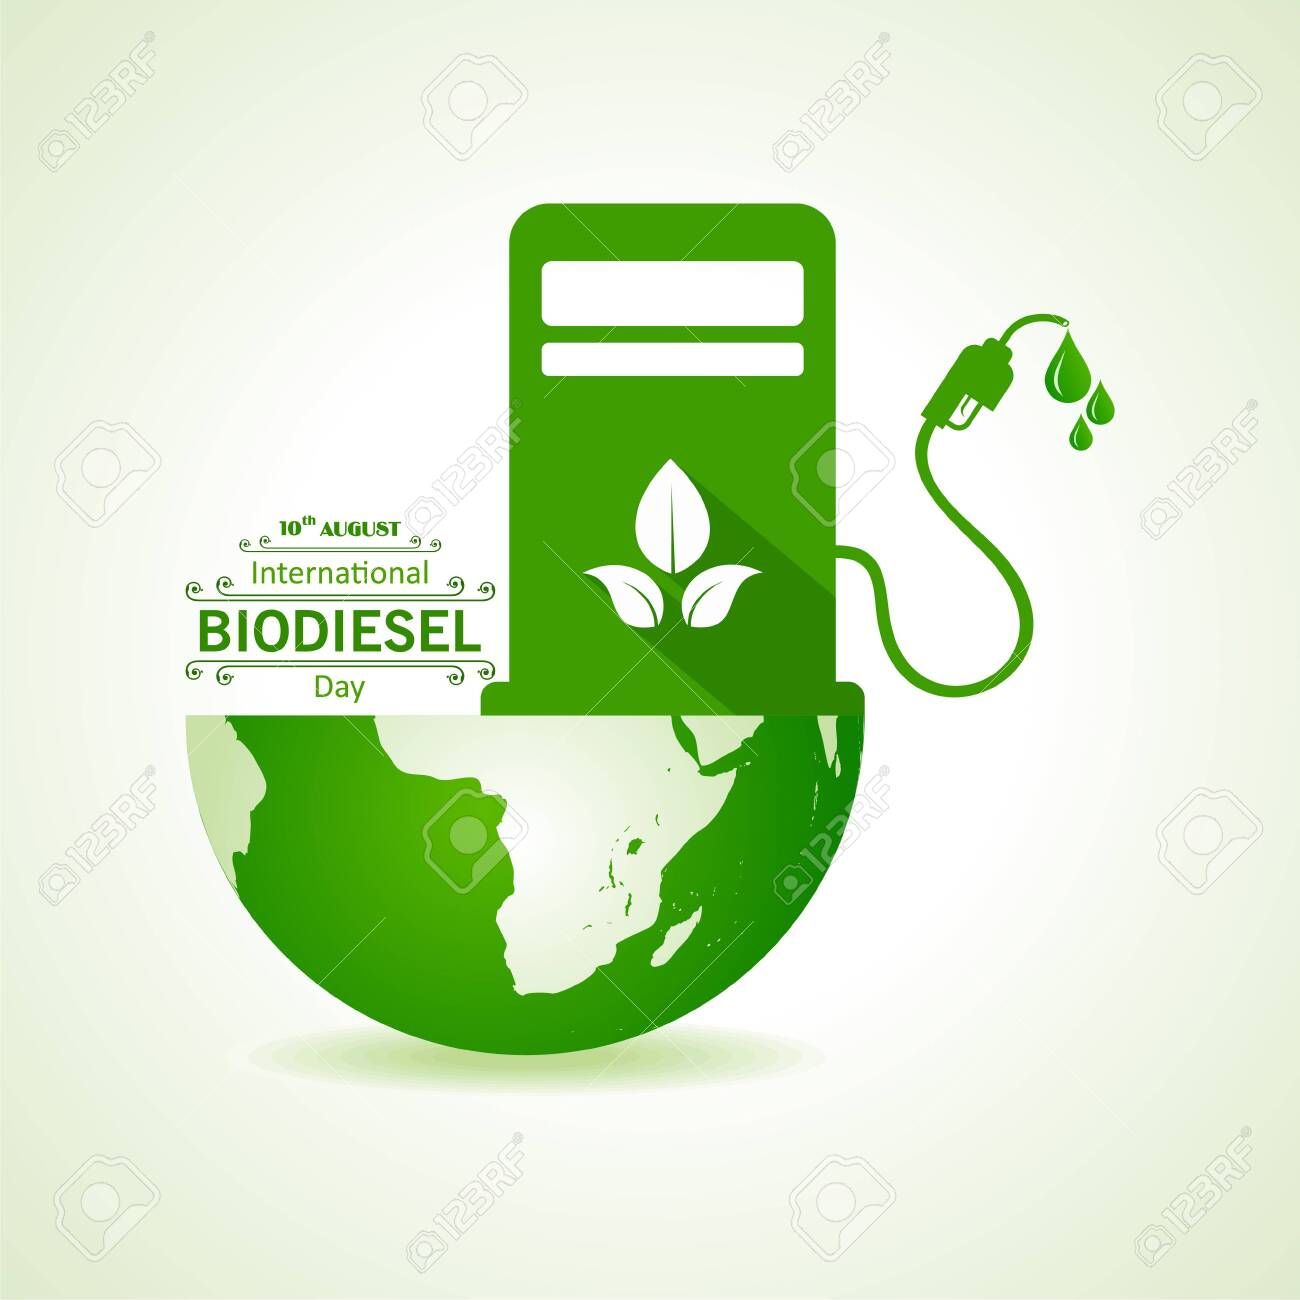 Illustration of International Biodiesel Day Greeting for Eco Environment - 10 August - 126067424